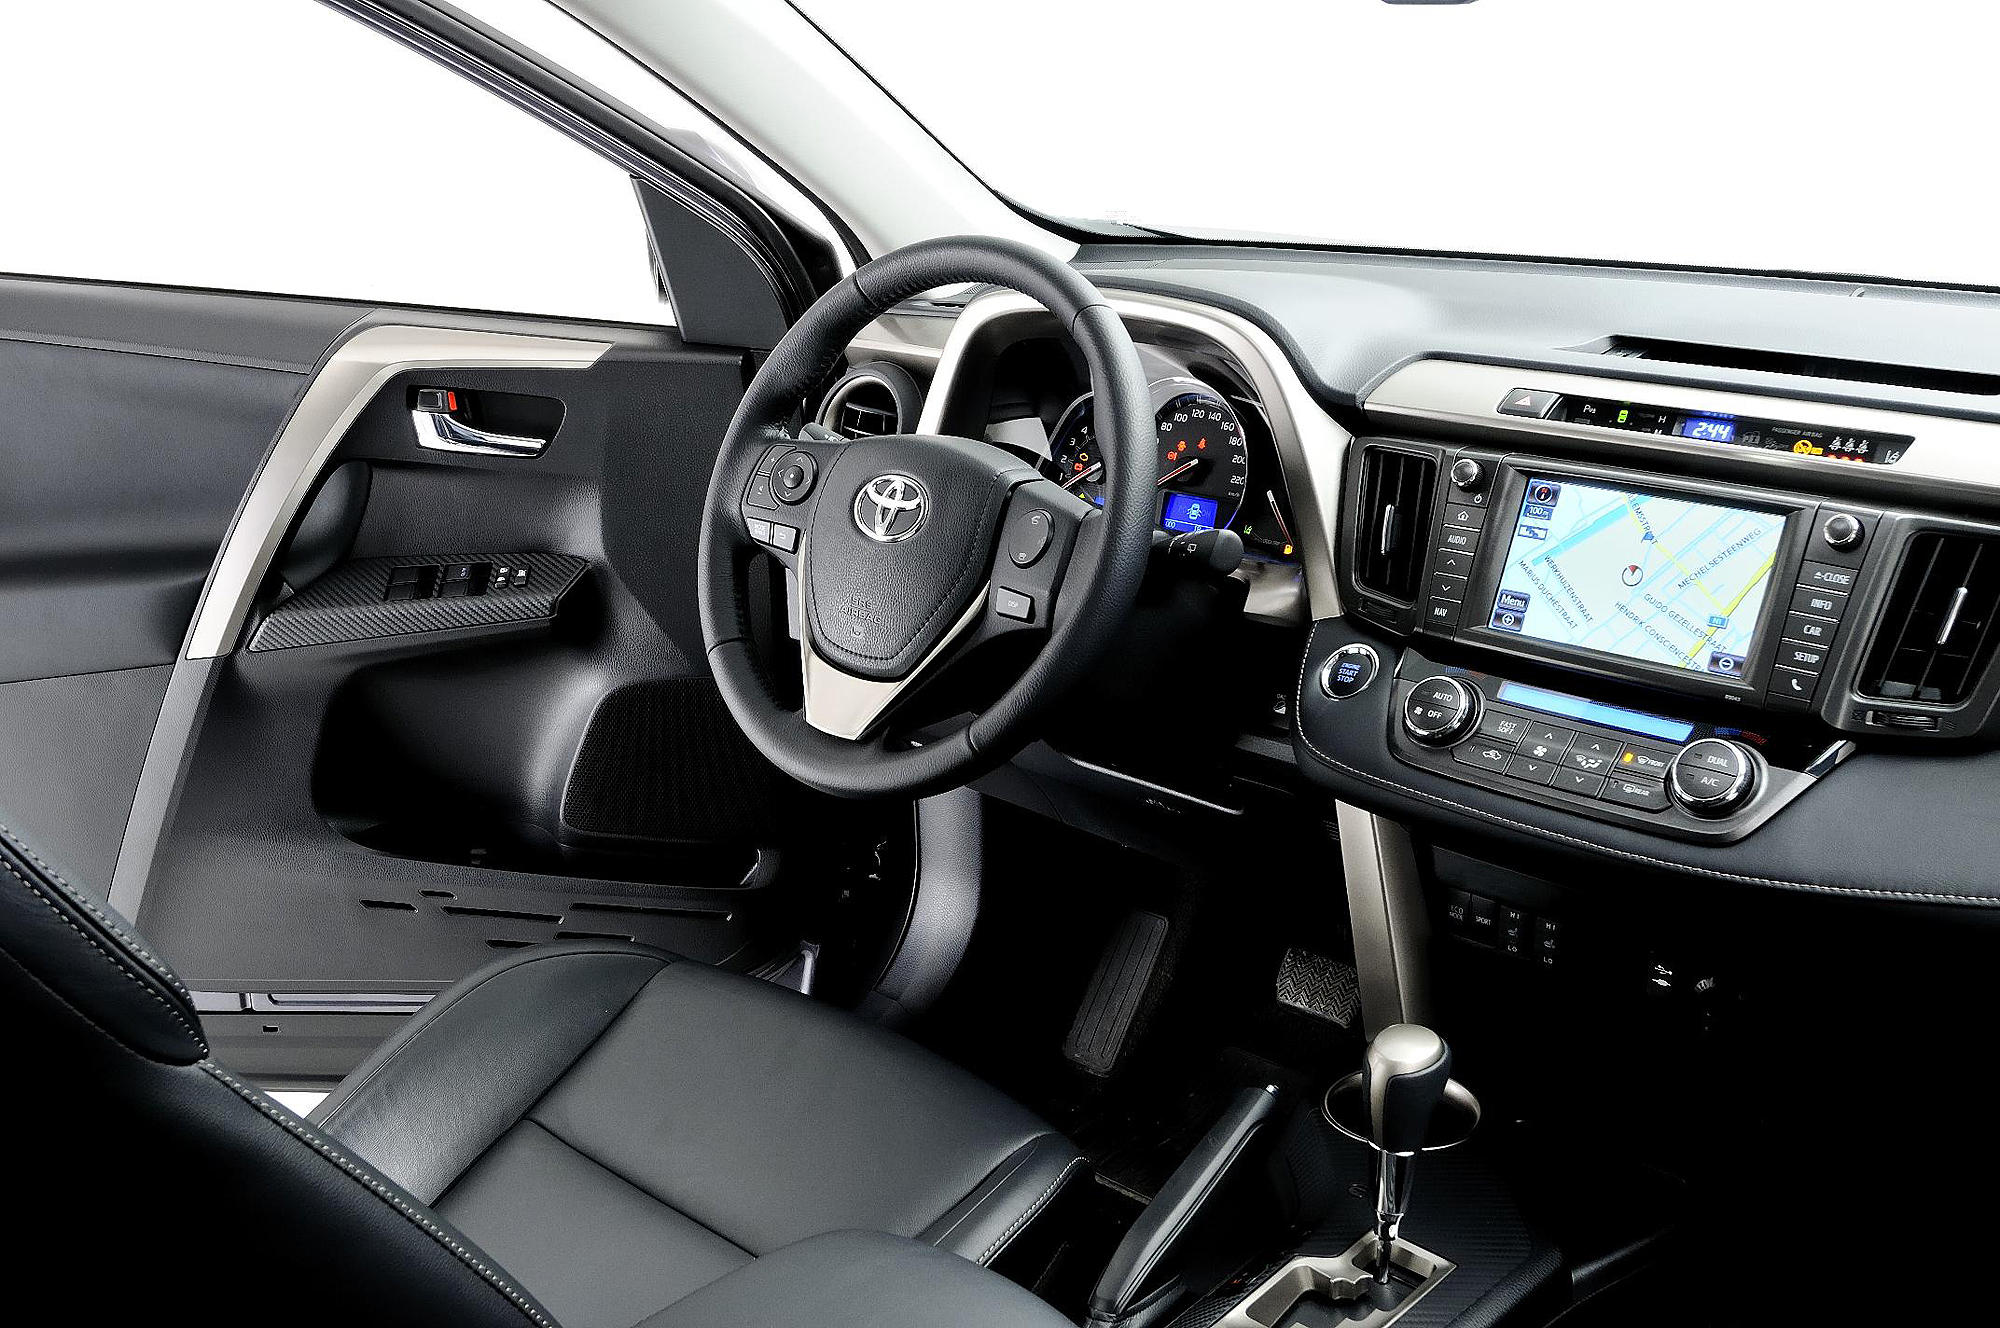 2013 toyota rav4 review motoring middle east car news reviews and buying guidesmotoring. Black Bedroom Furniture Sets. Home Design Ideas